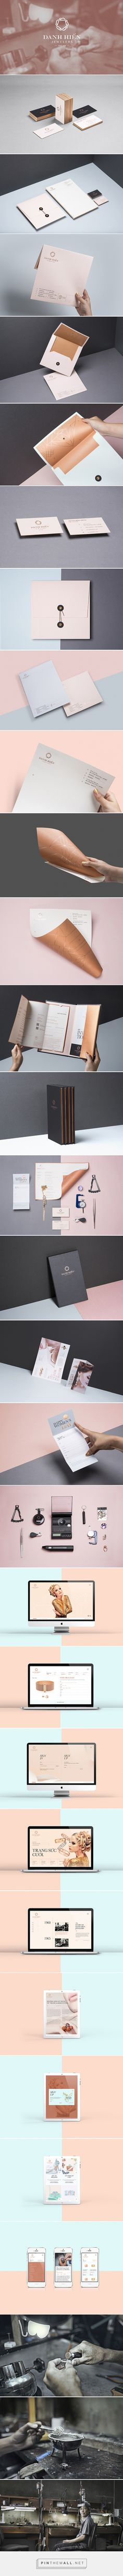 Danh Hien Jewelers   STATIONERY OVERDOSE